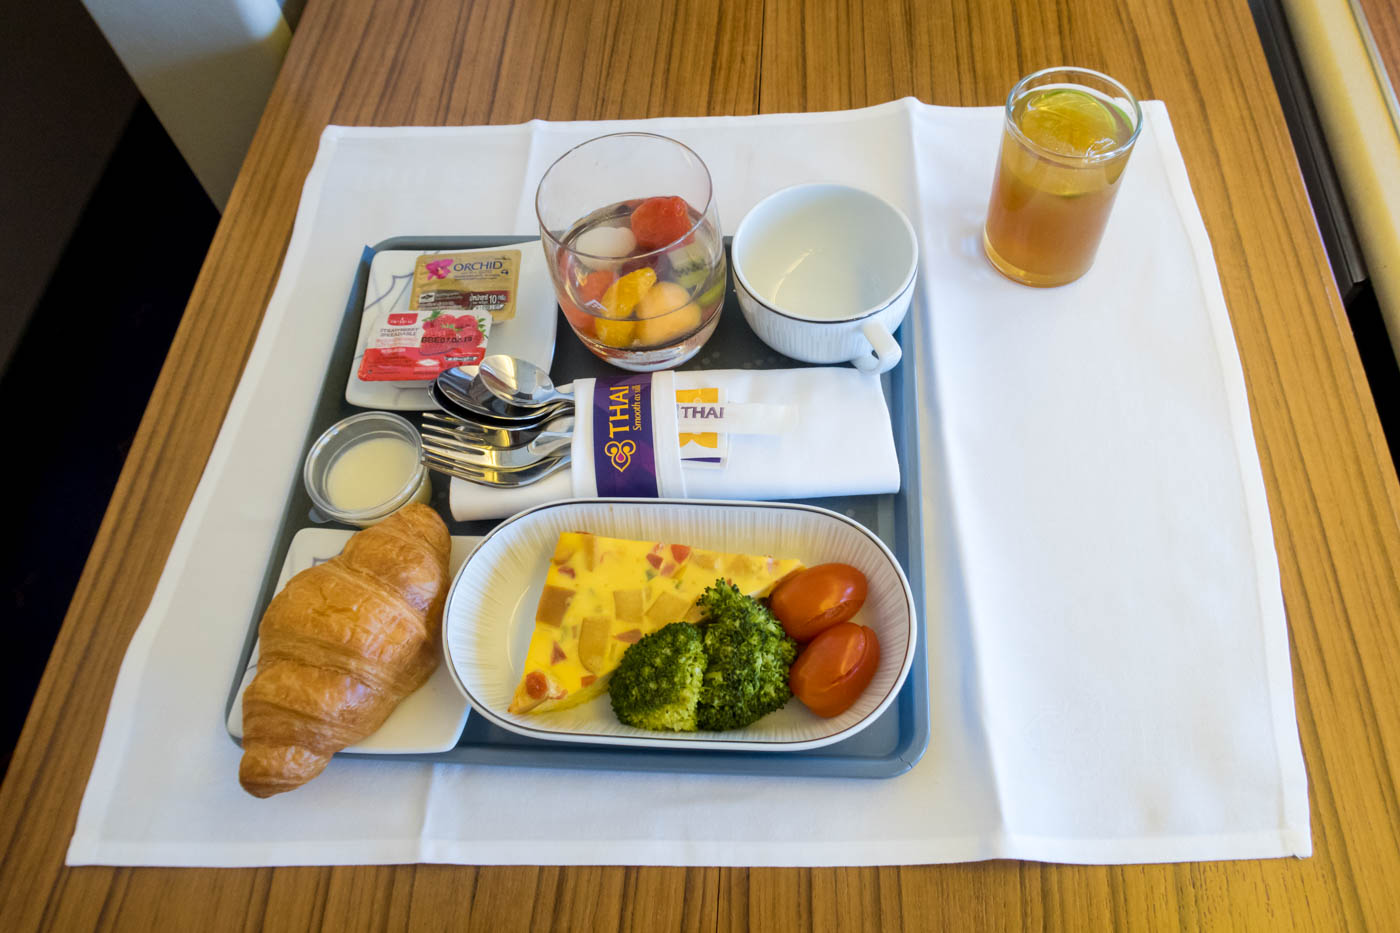 Thai Airways Domestic Business Class Breakfast